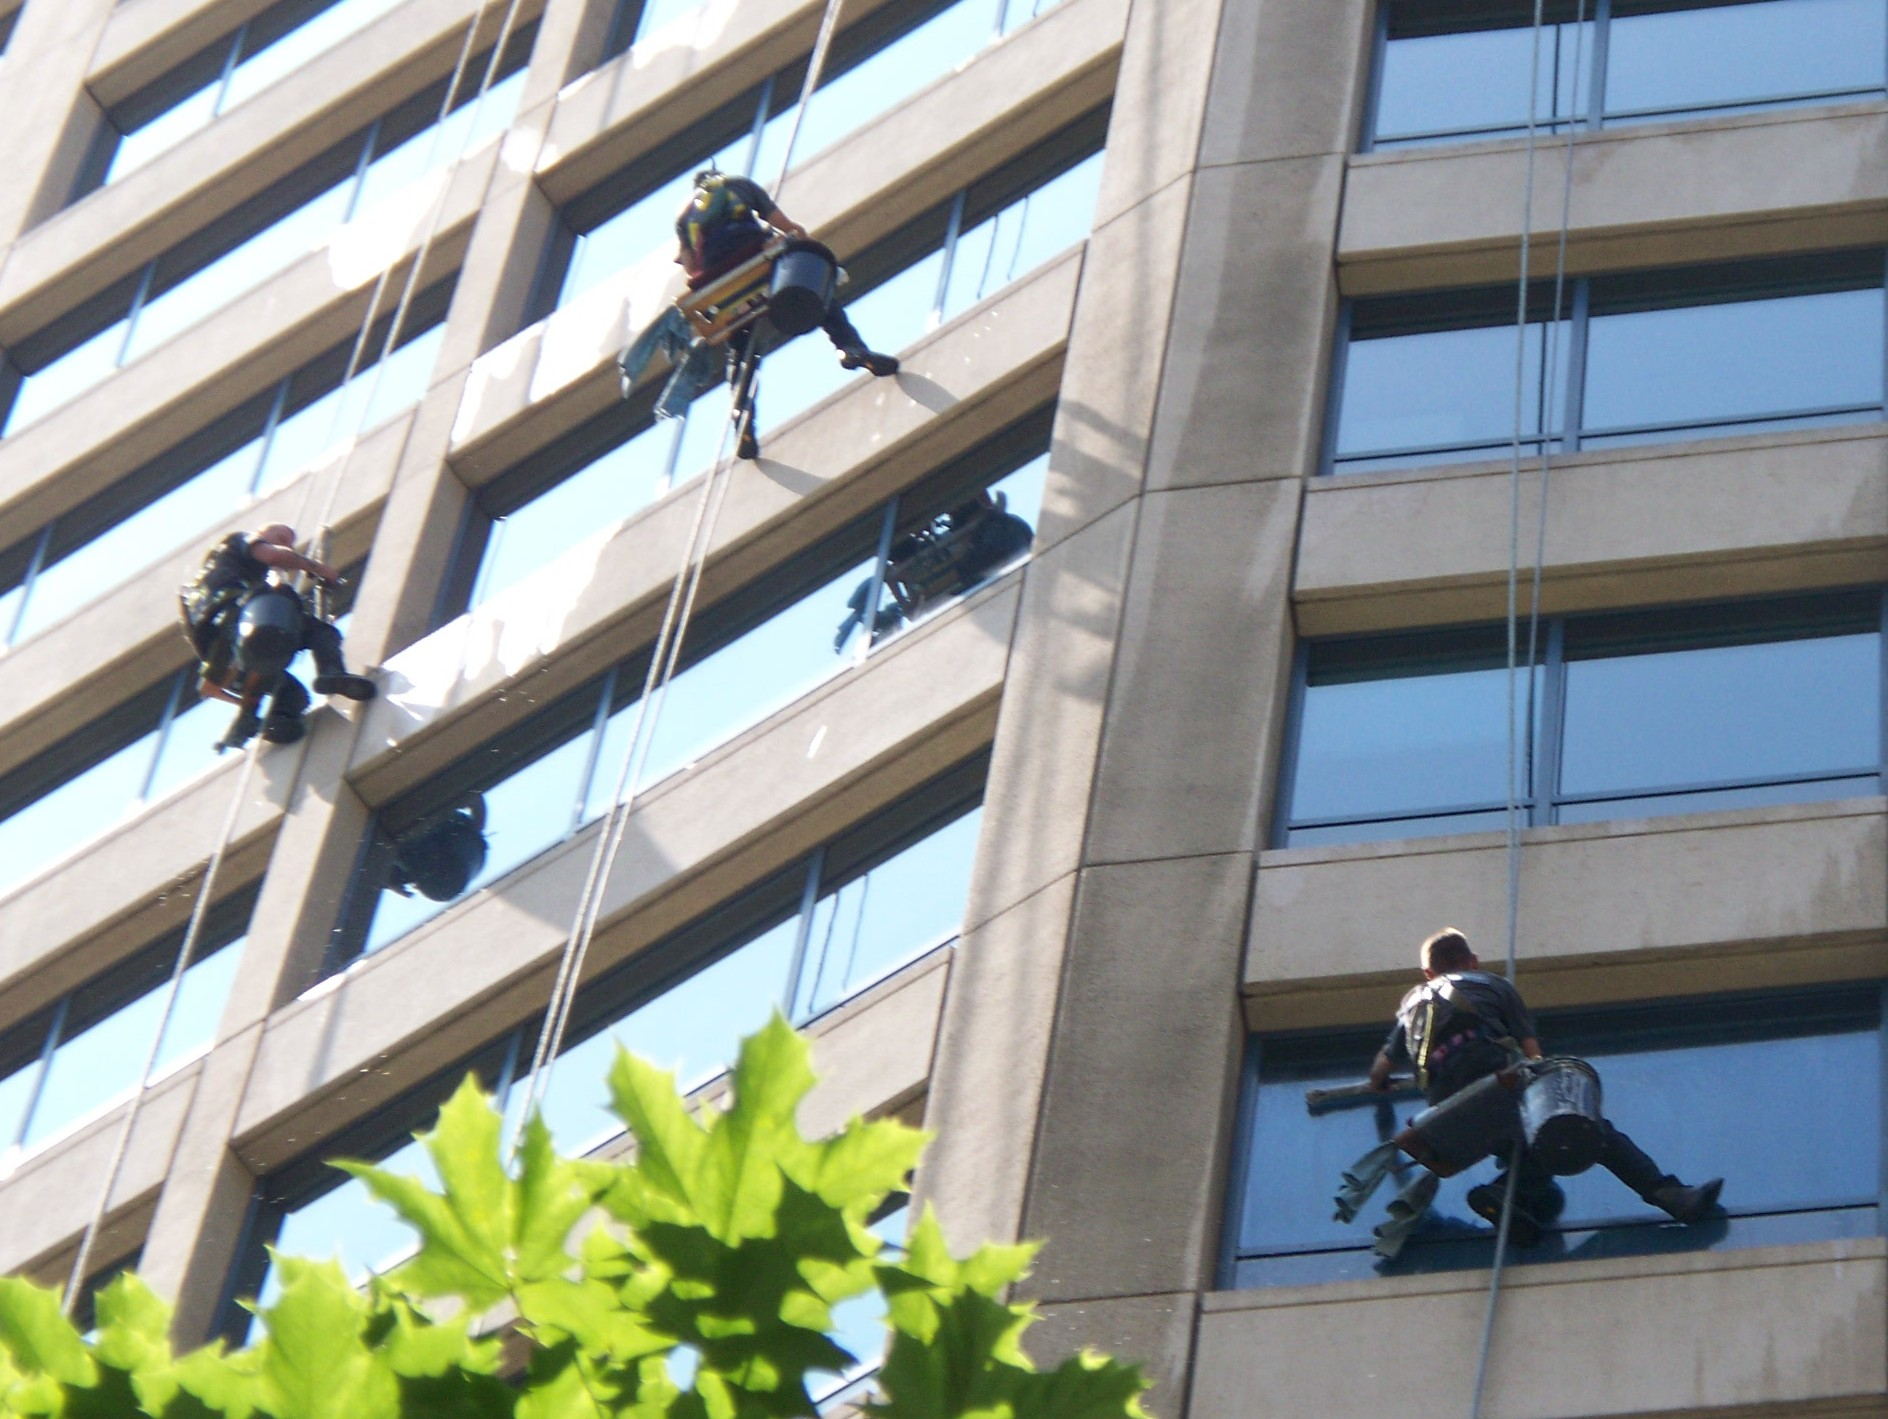 Capabilities are a burden:  Some thoughts on Window Washing